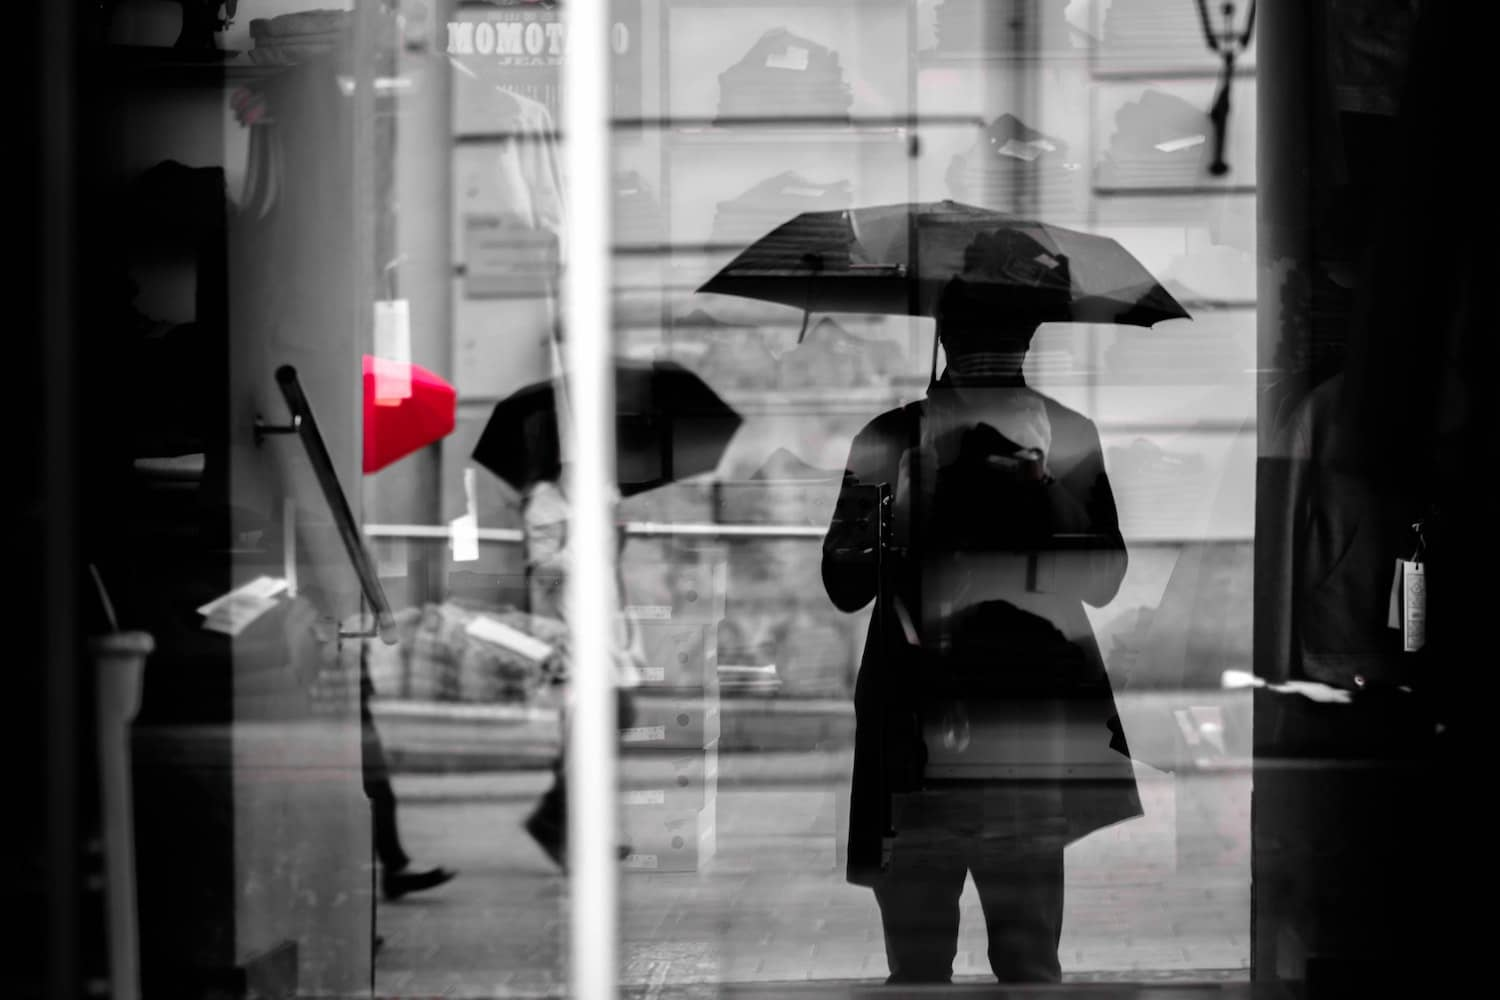 black and white photo of person in the rain with umbrella